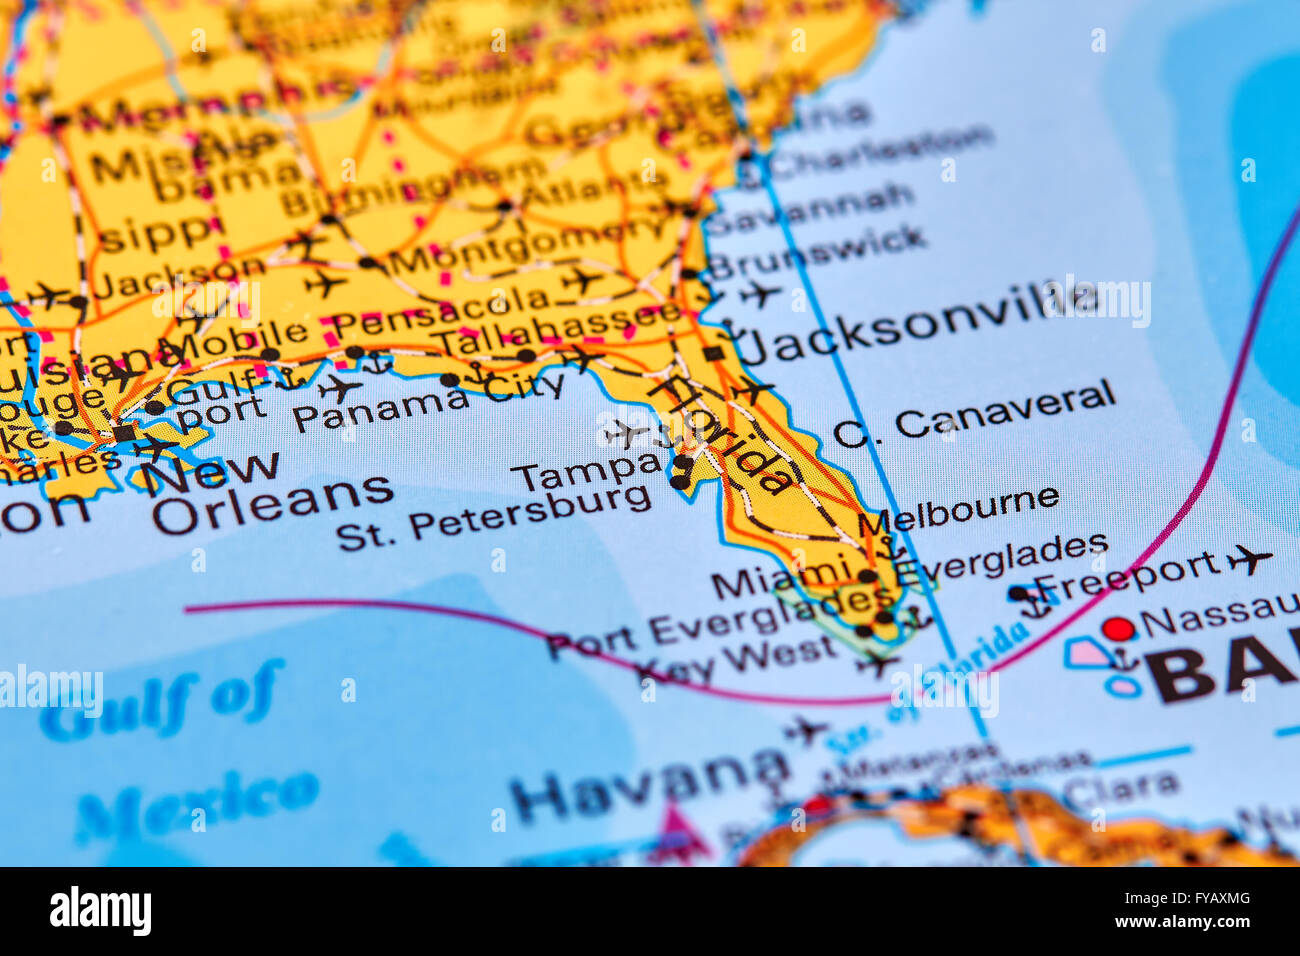 Florida State In USA On The World Map Stock Photo Royalty Free - Florida usa map